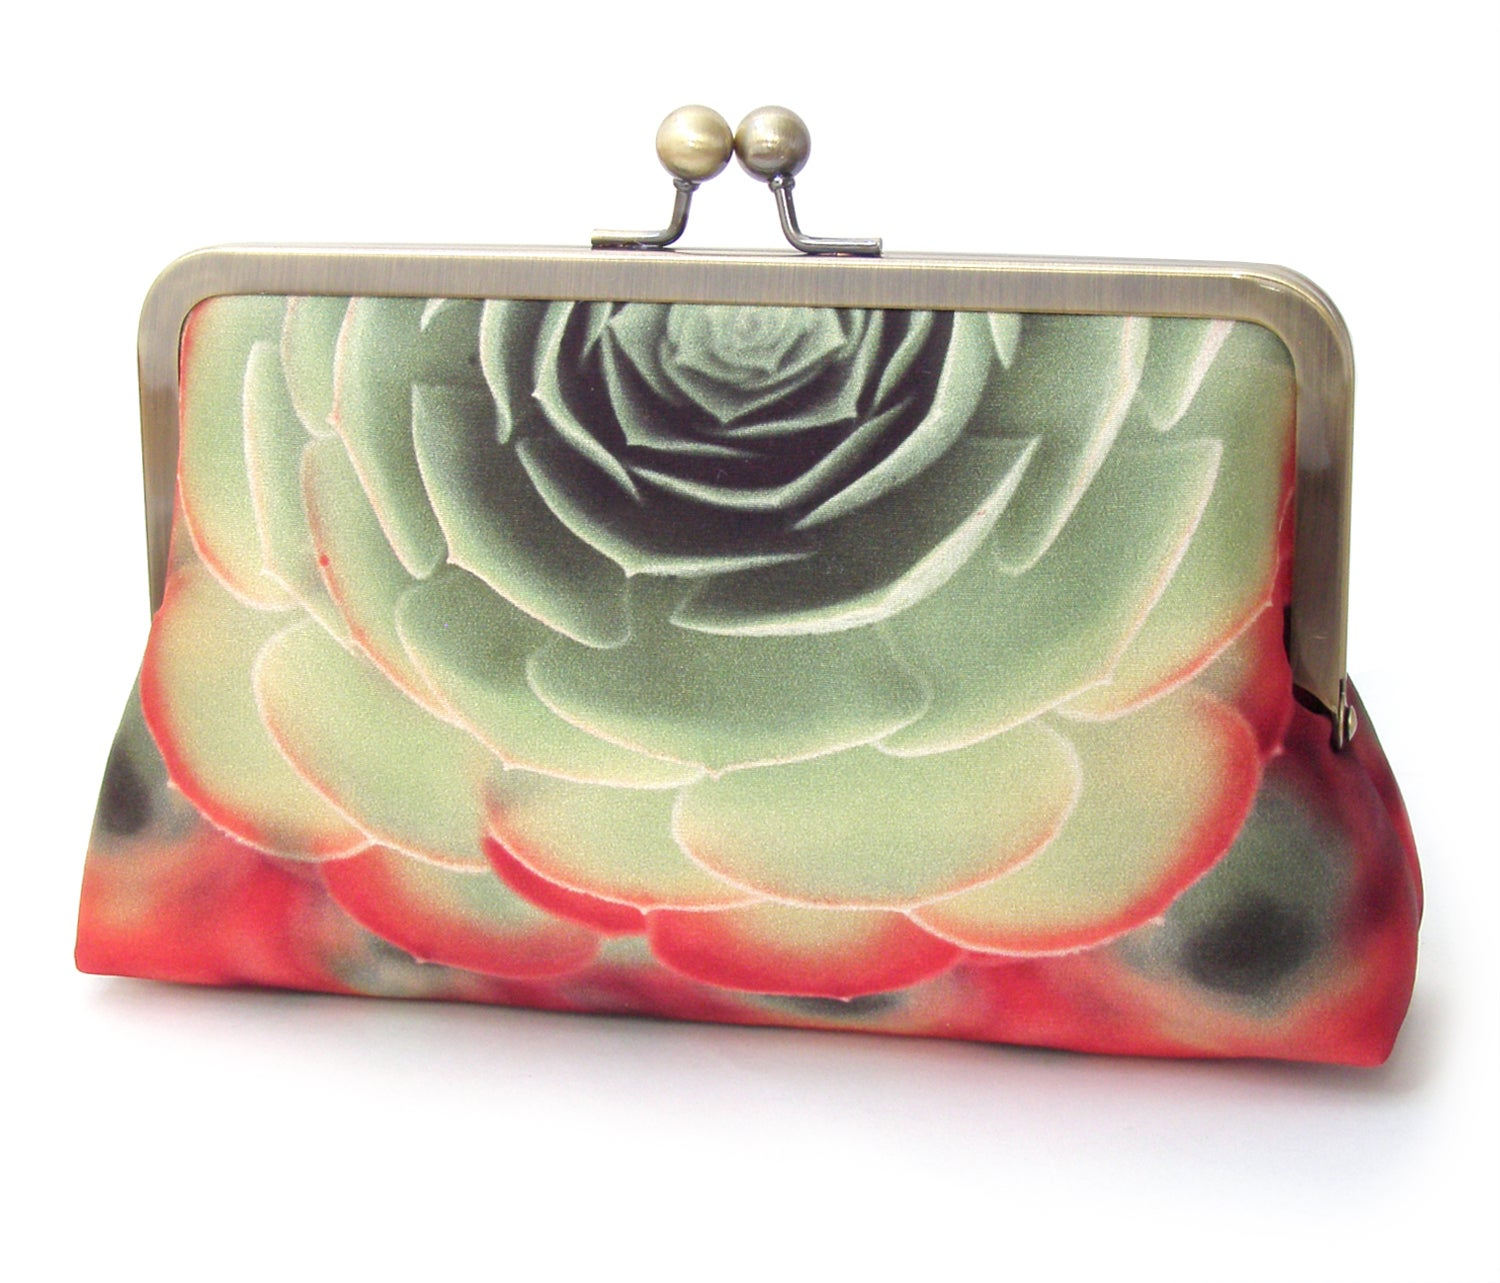 Image of Succulent clutch purse, green and red silk bag, aeonium cacti